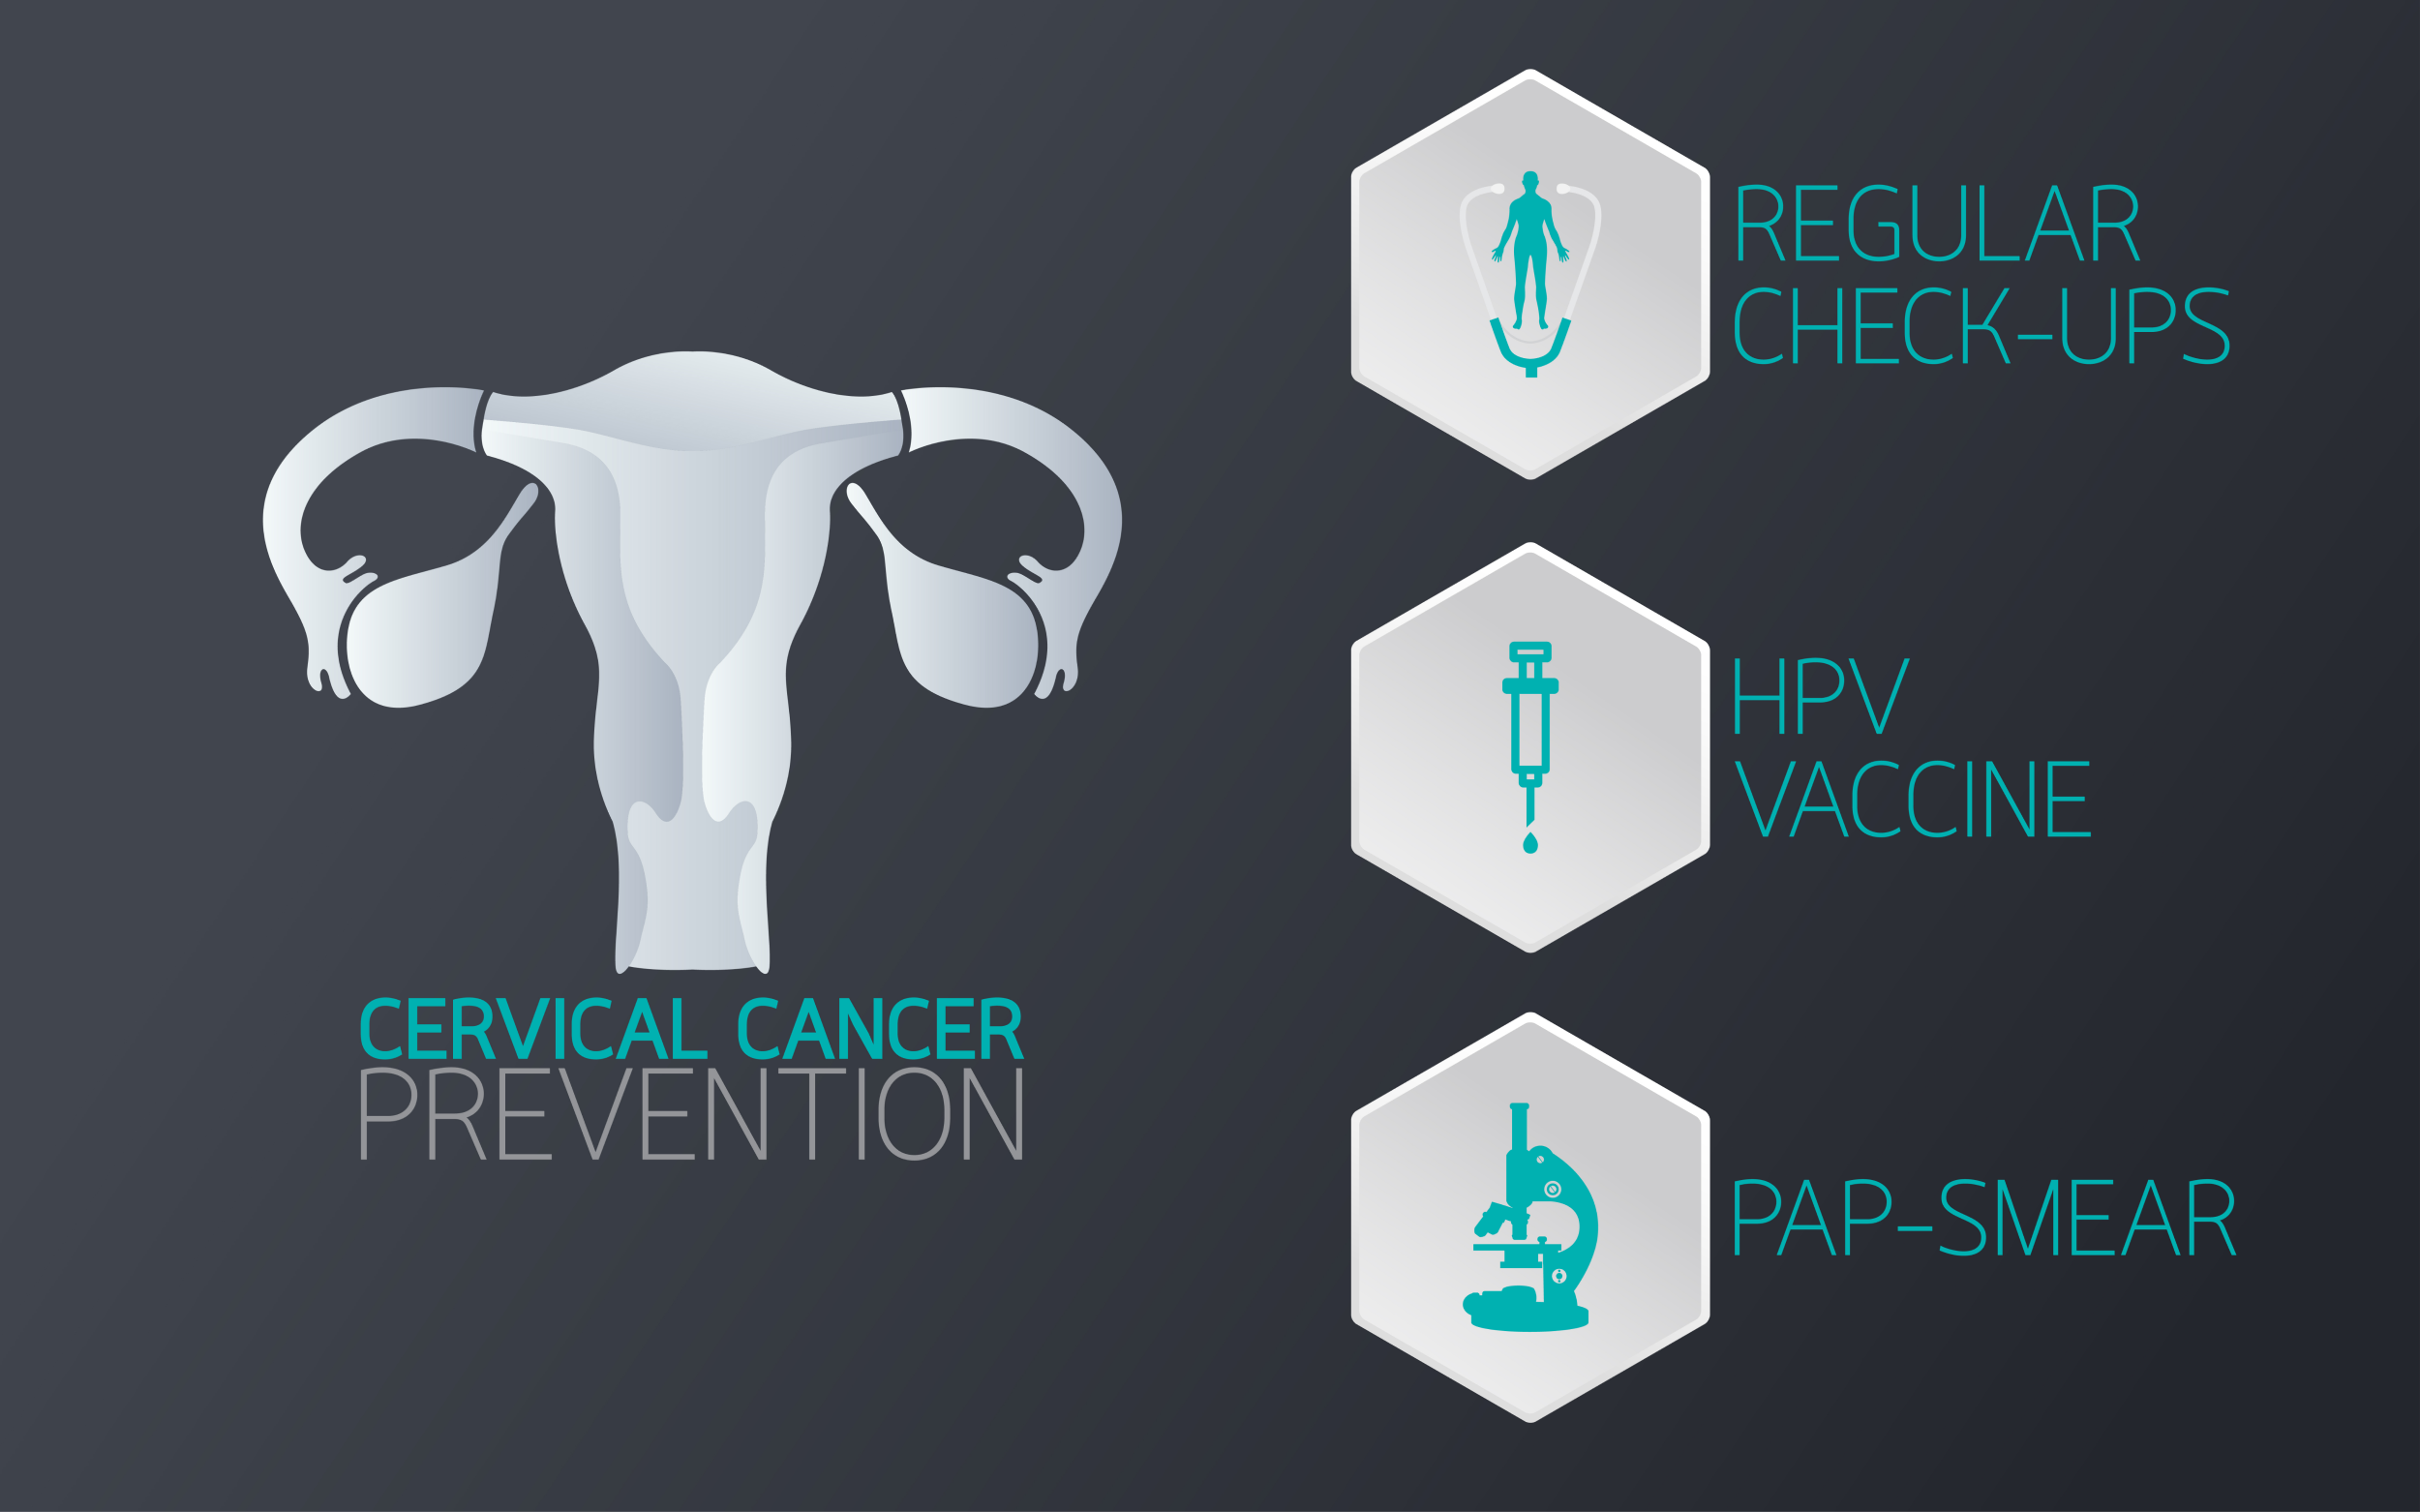 Cervical Cancer Prevention